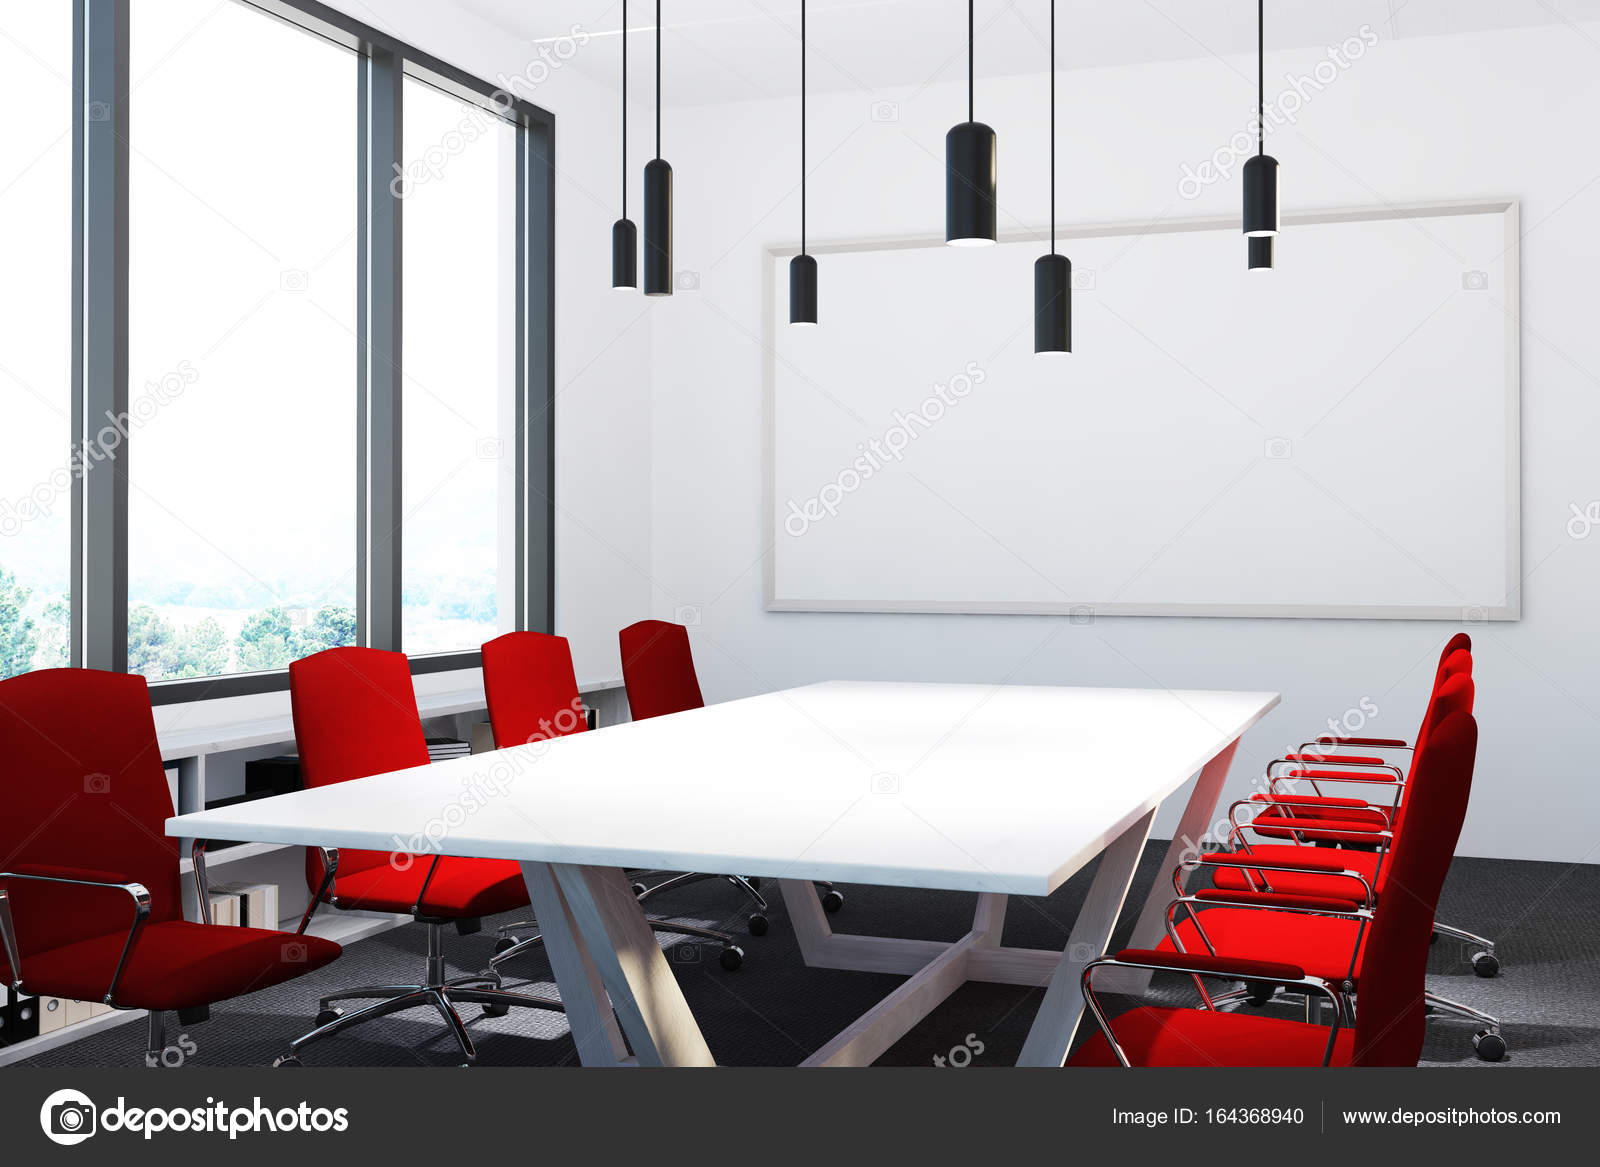 Meeting Room With Red Chairs Whiteboard Stock Photo - Red conference table